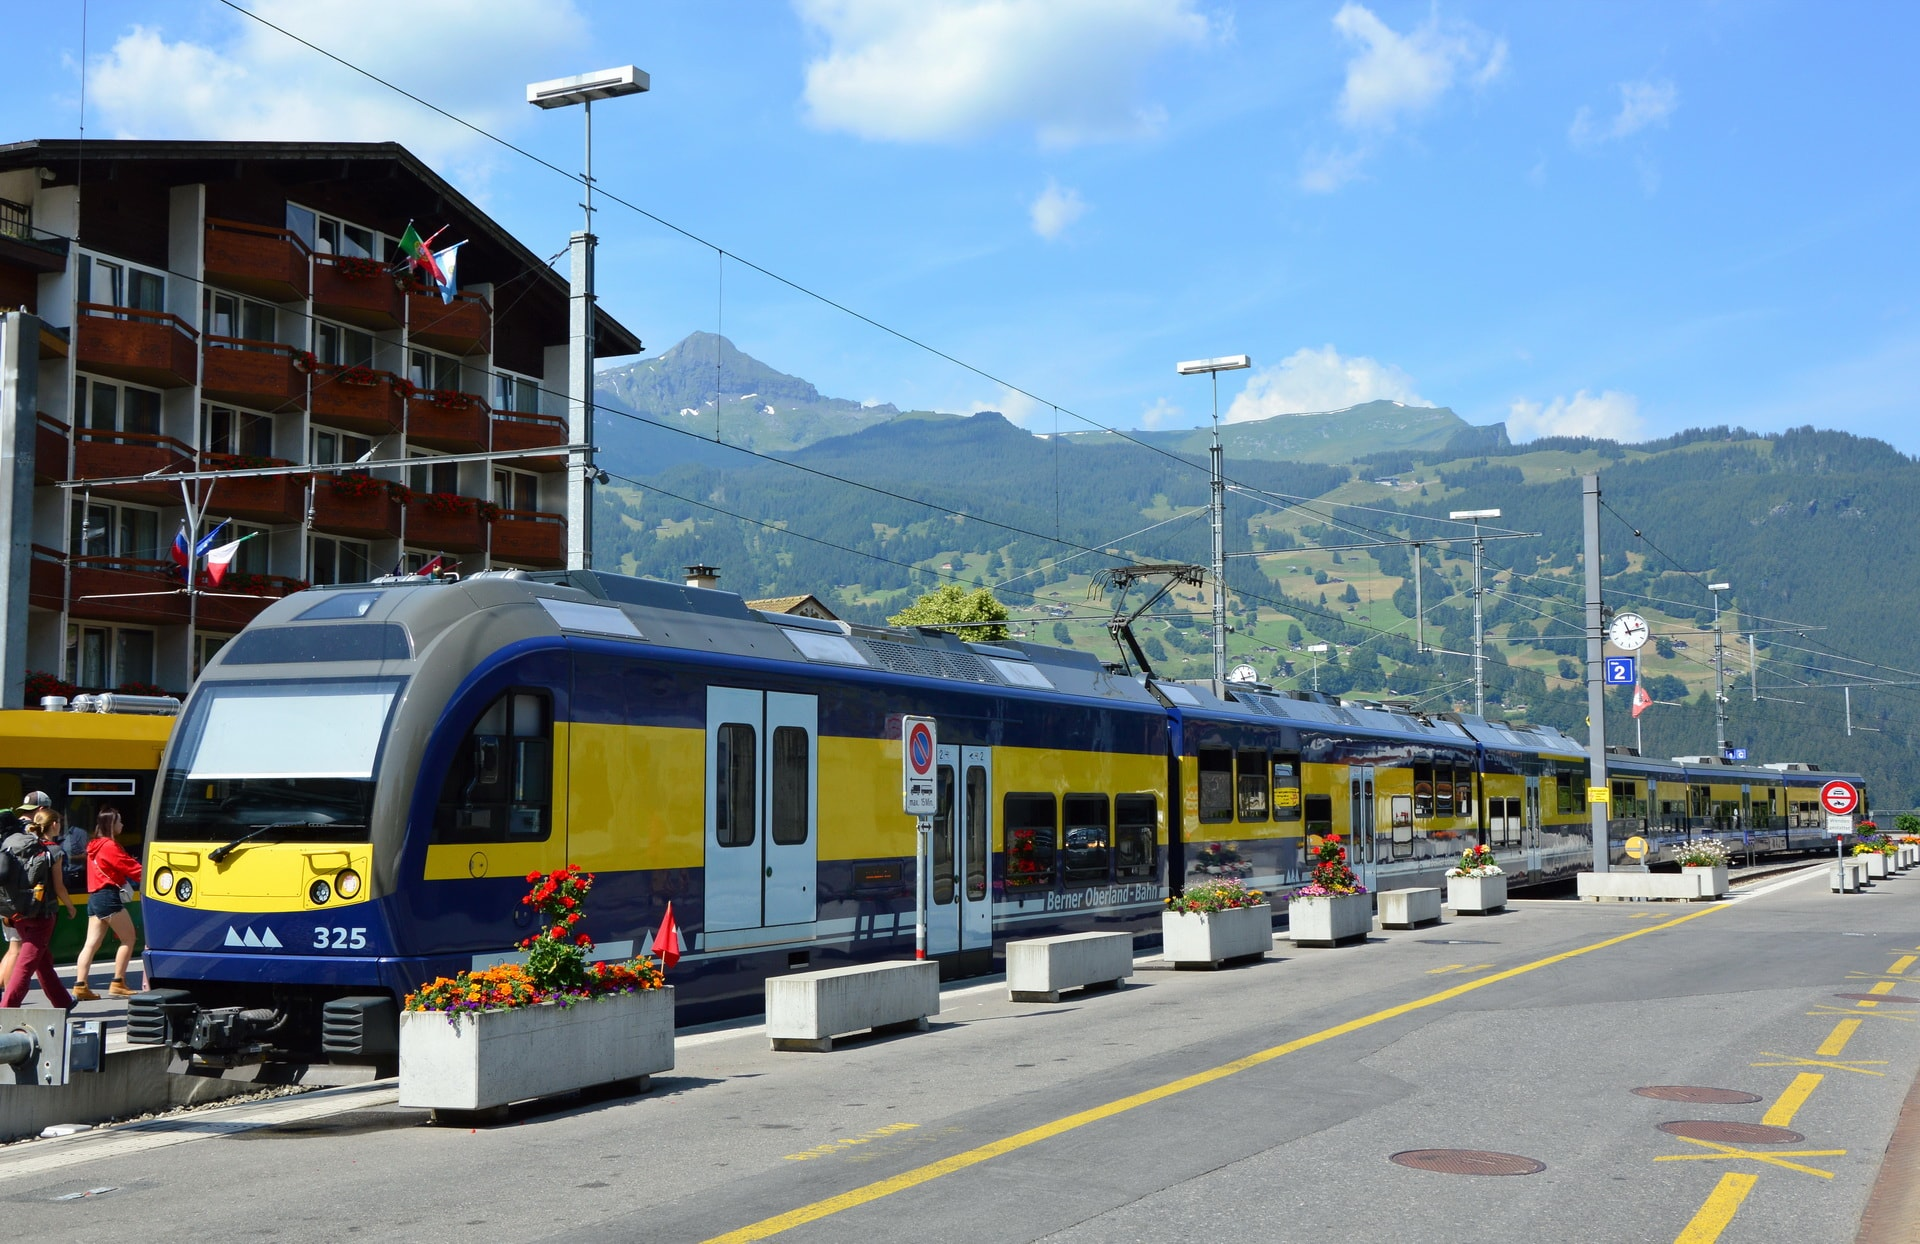 Train connecting Interlaken-Ost with Grindelwald